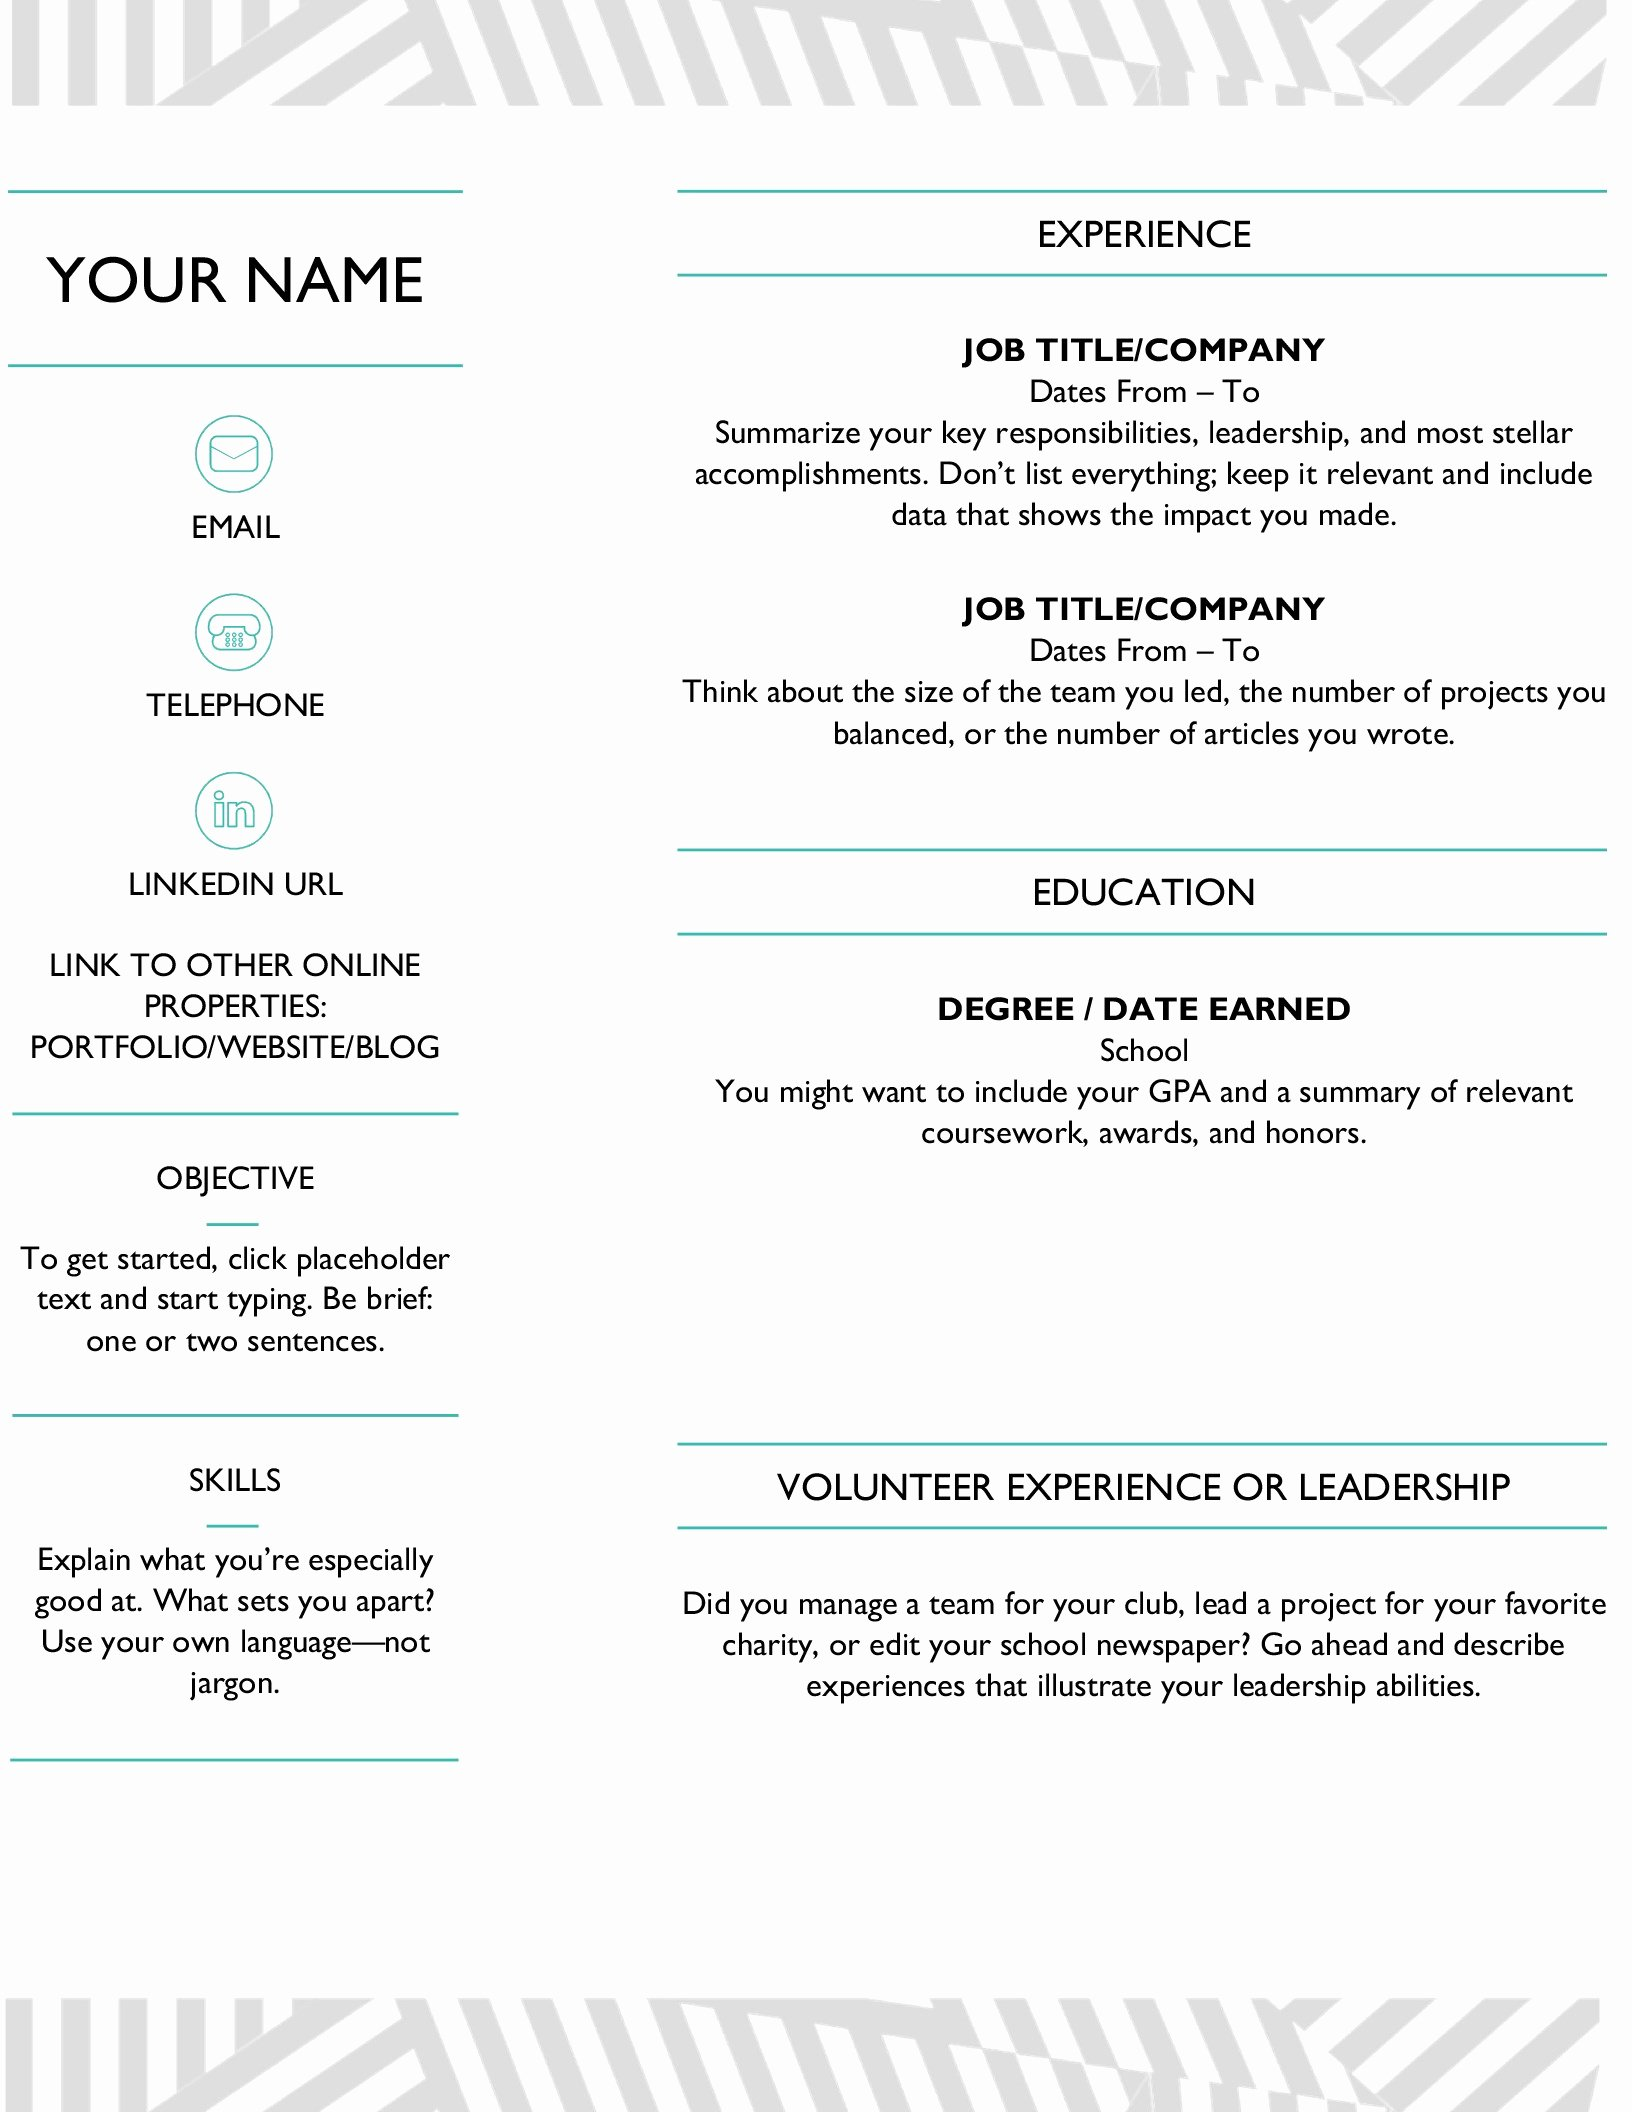 Moo Resume Templates Elegant Resumes and Cover Letters Fice